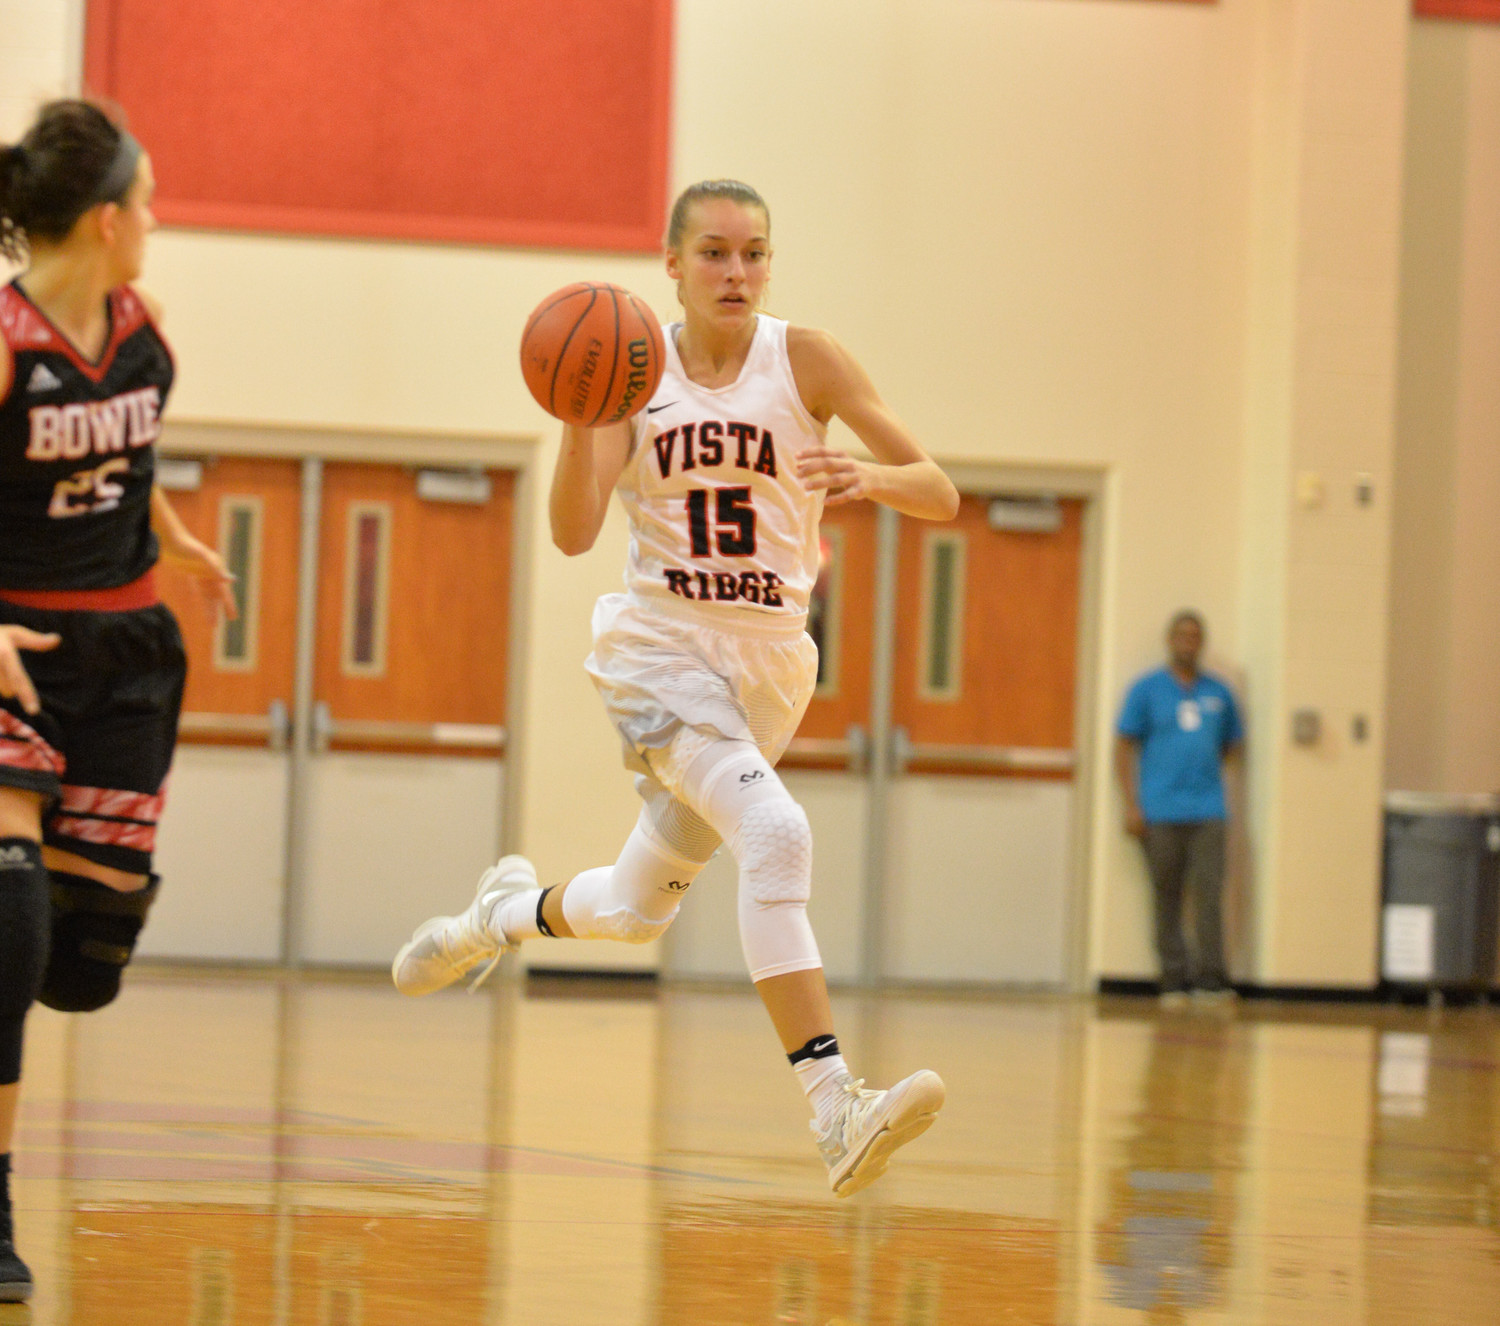 Vista Ridge freshman A.J. Marotte was the District 25-6A co-Newcomer of the year with teammate Victoria Baker. The Lady Rangers made it to the first round of the playoffs.